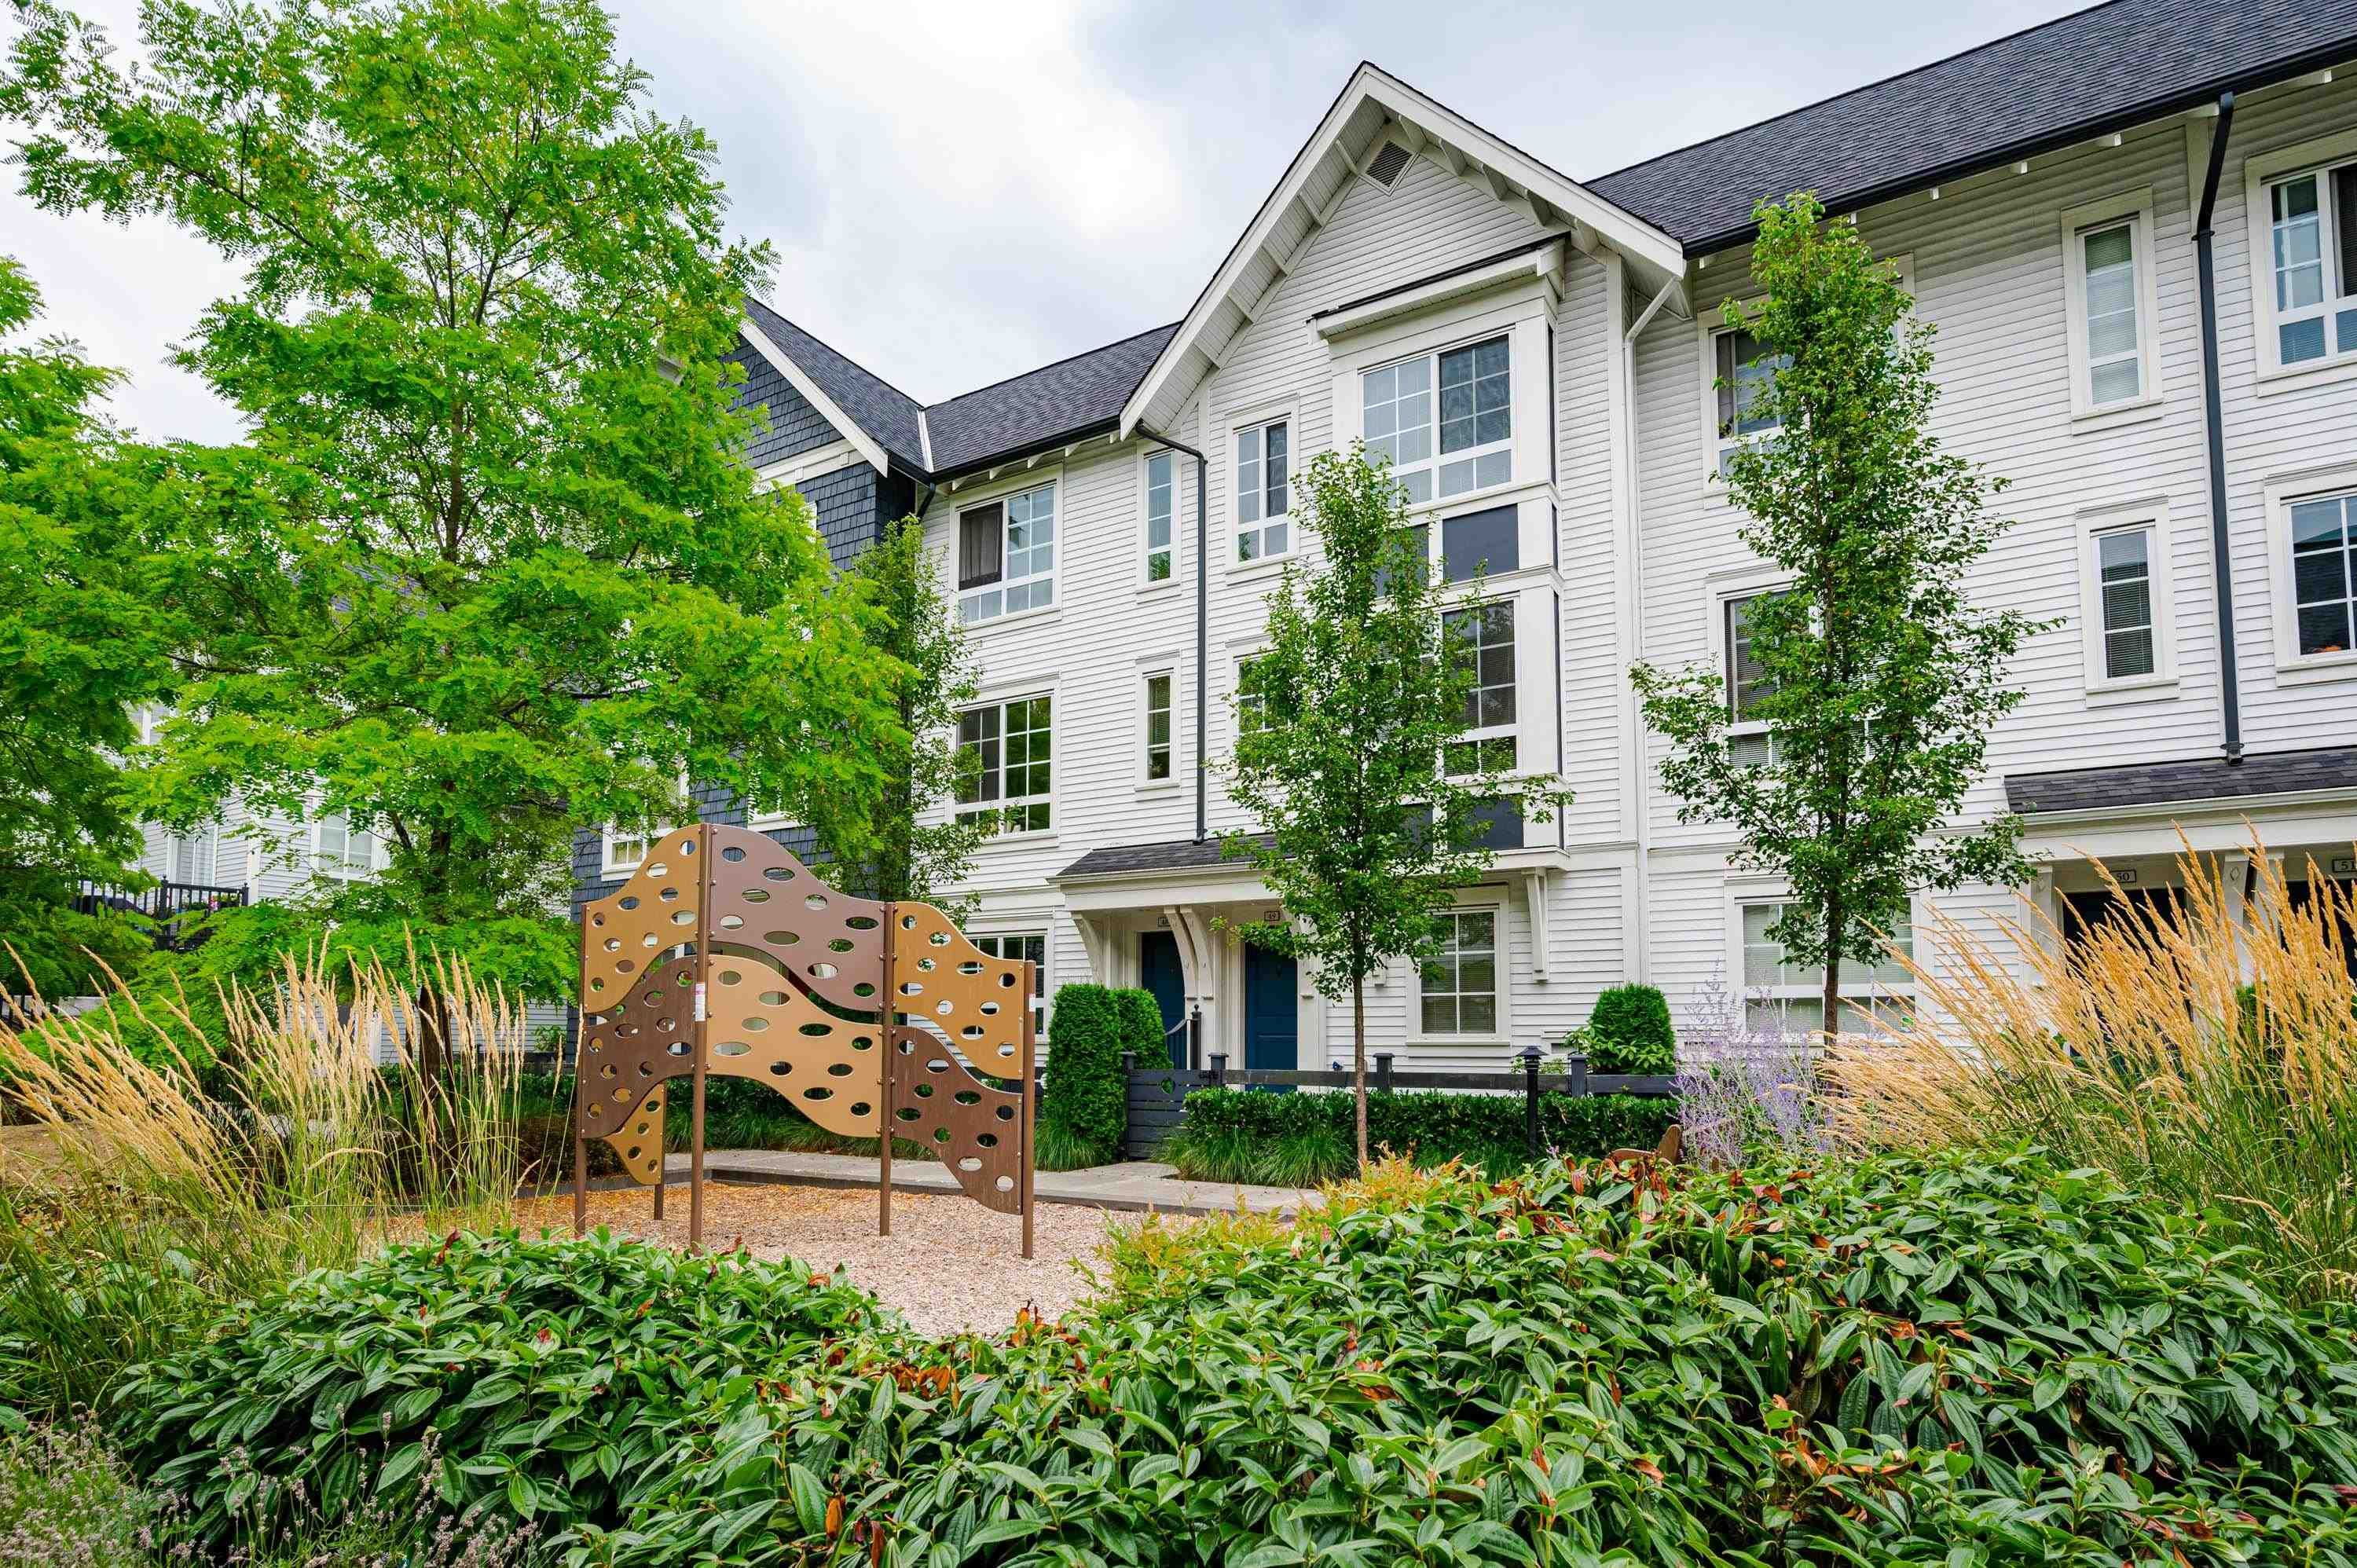 """Main Photo: 49 8476 207A Street in Langley: Willoughby Heights Townhouse for sale in """"YORK By Mosaic"""" : MLS®# R2609087"""